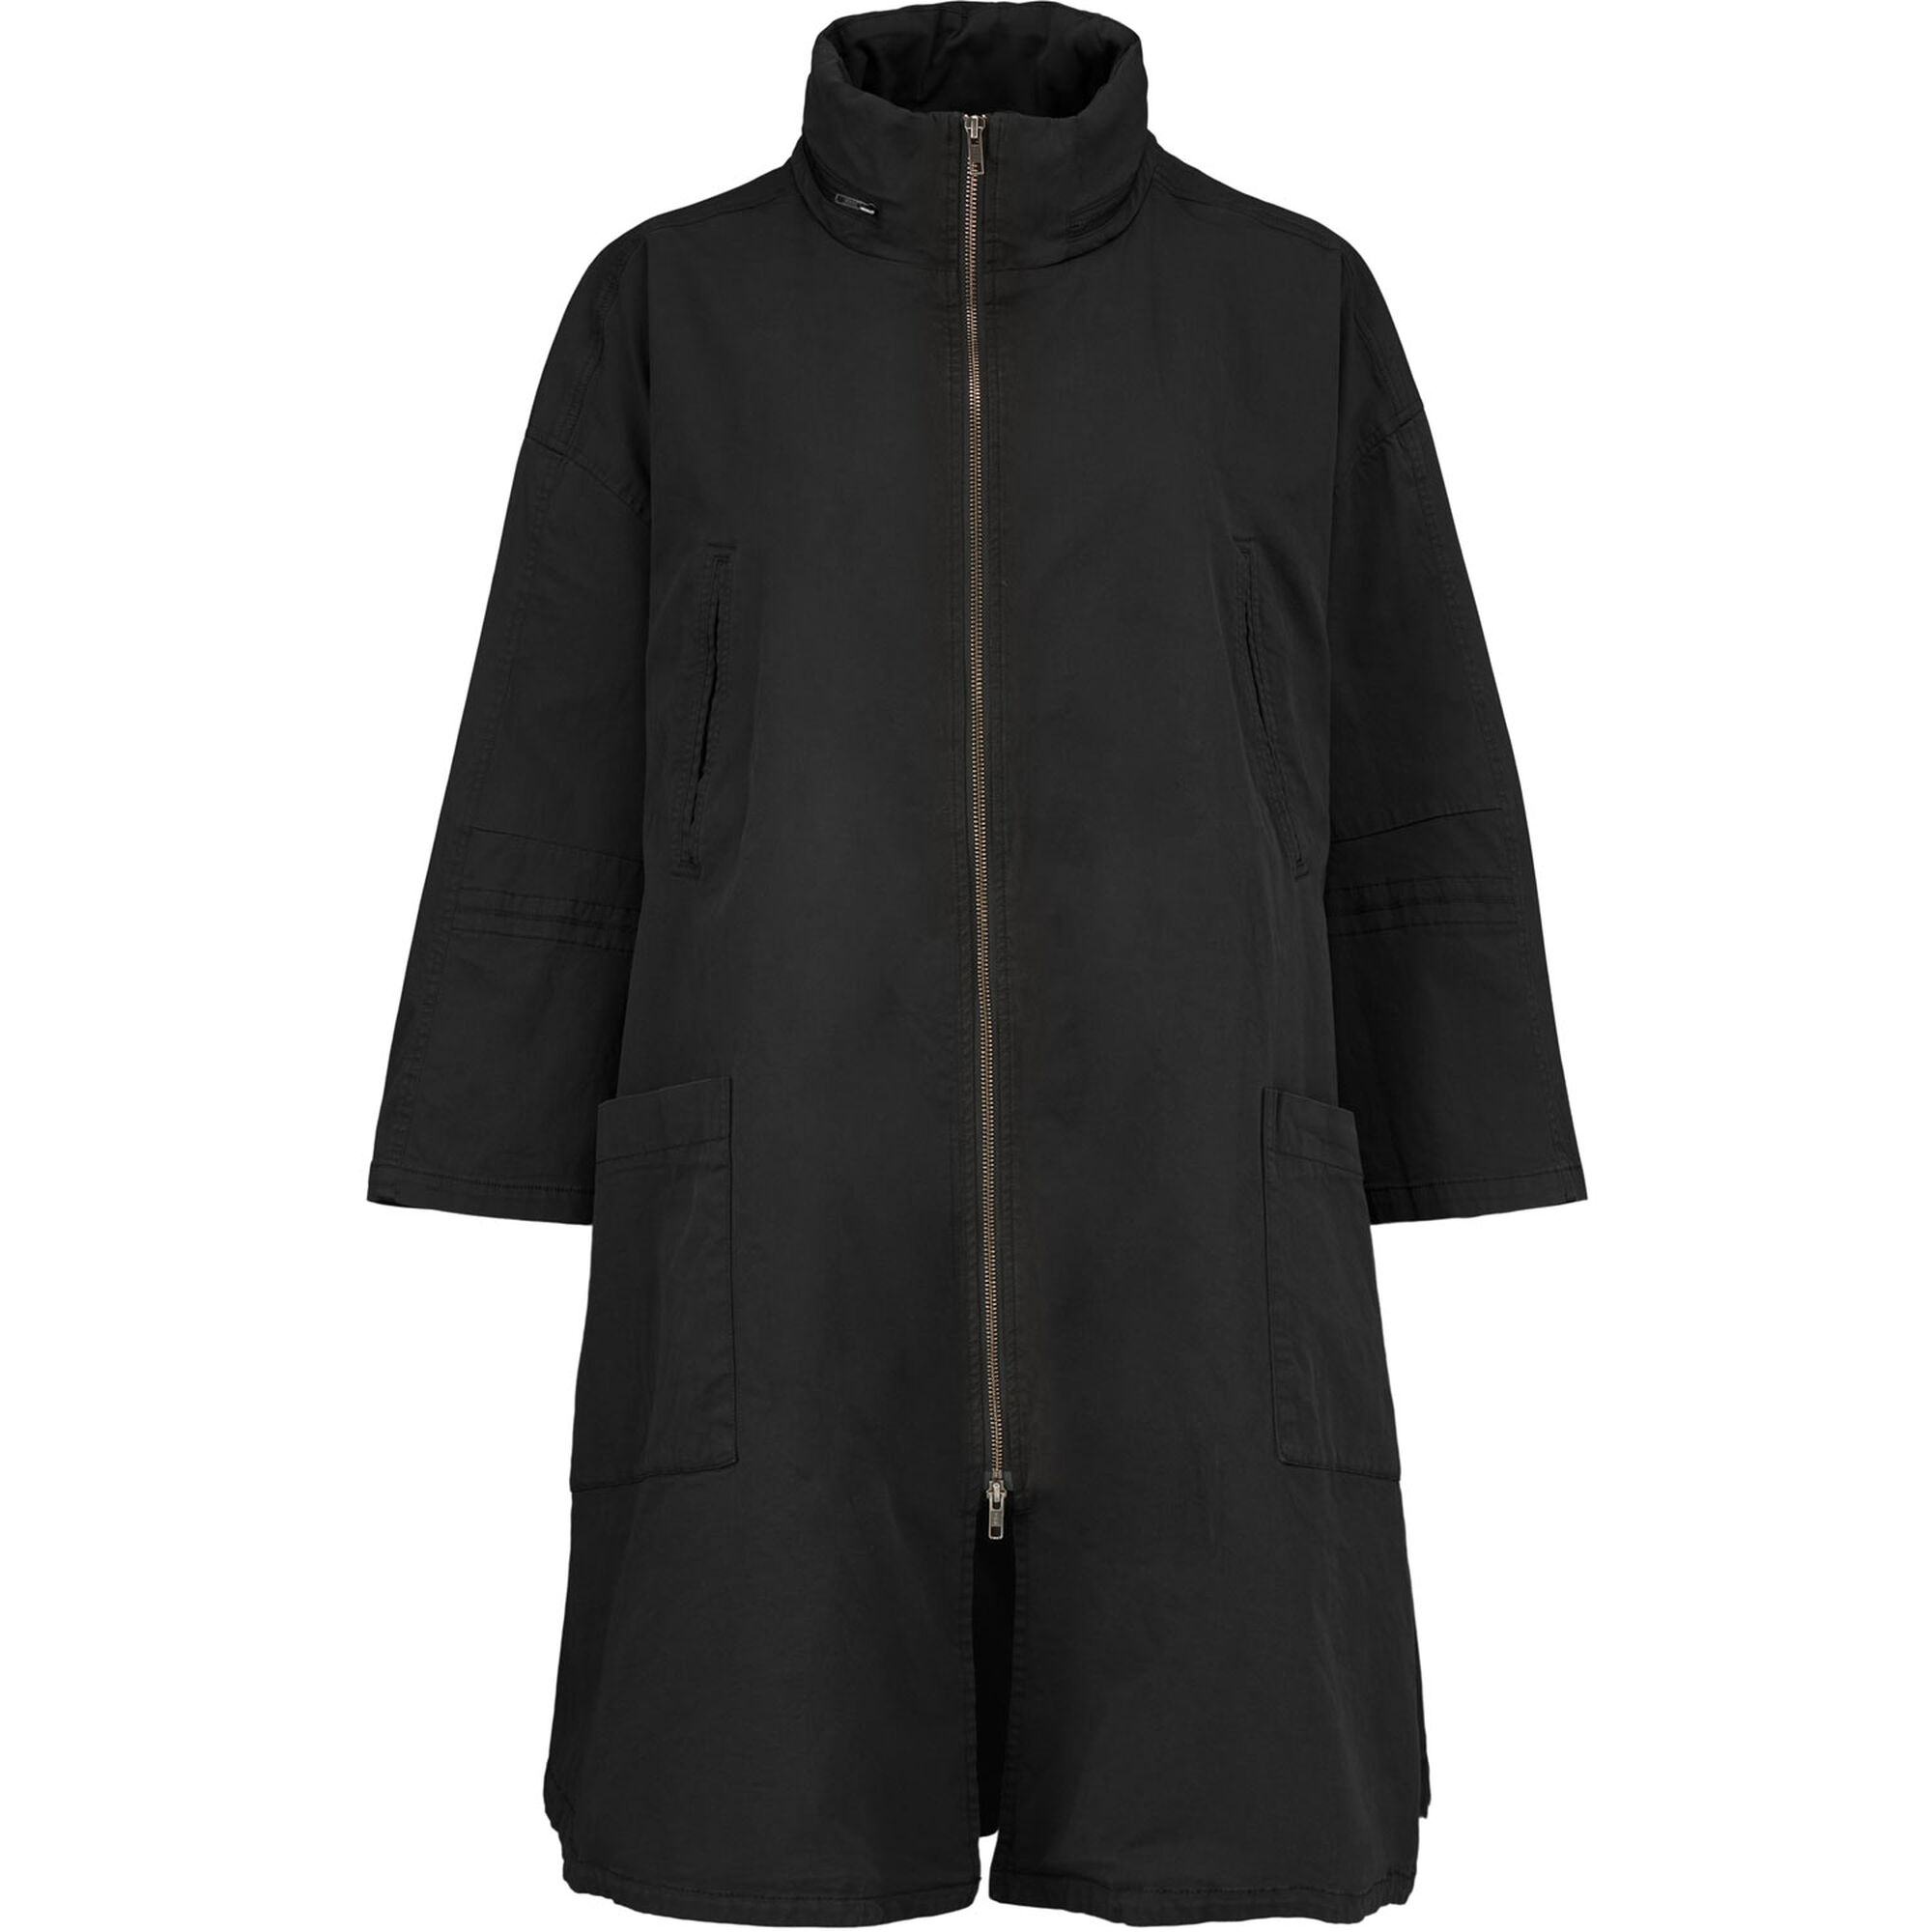 TRIXI COAT, Black, hi-res